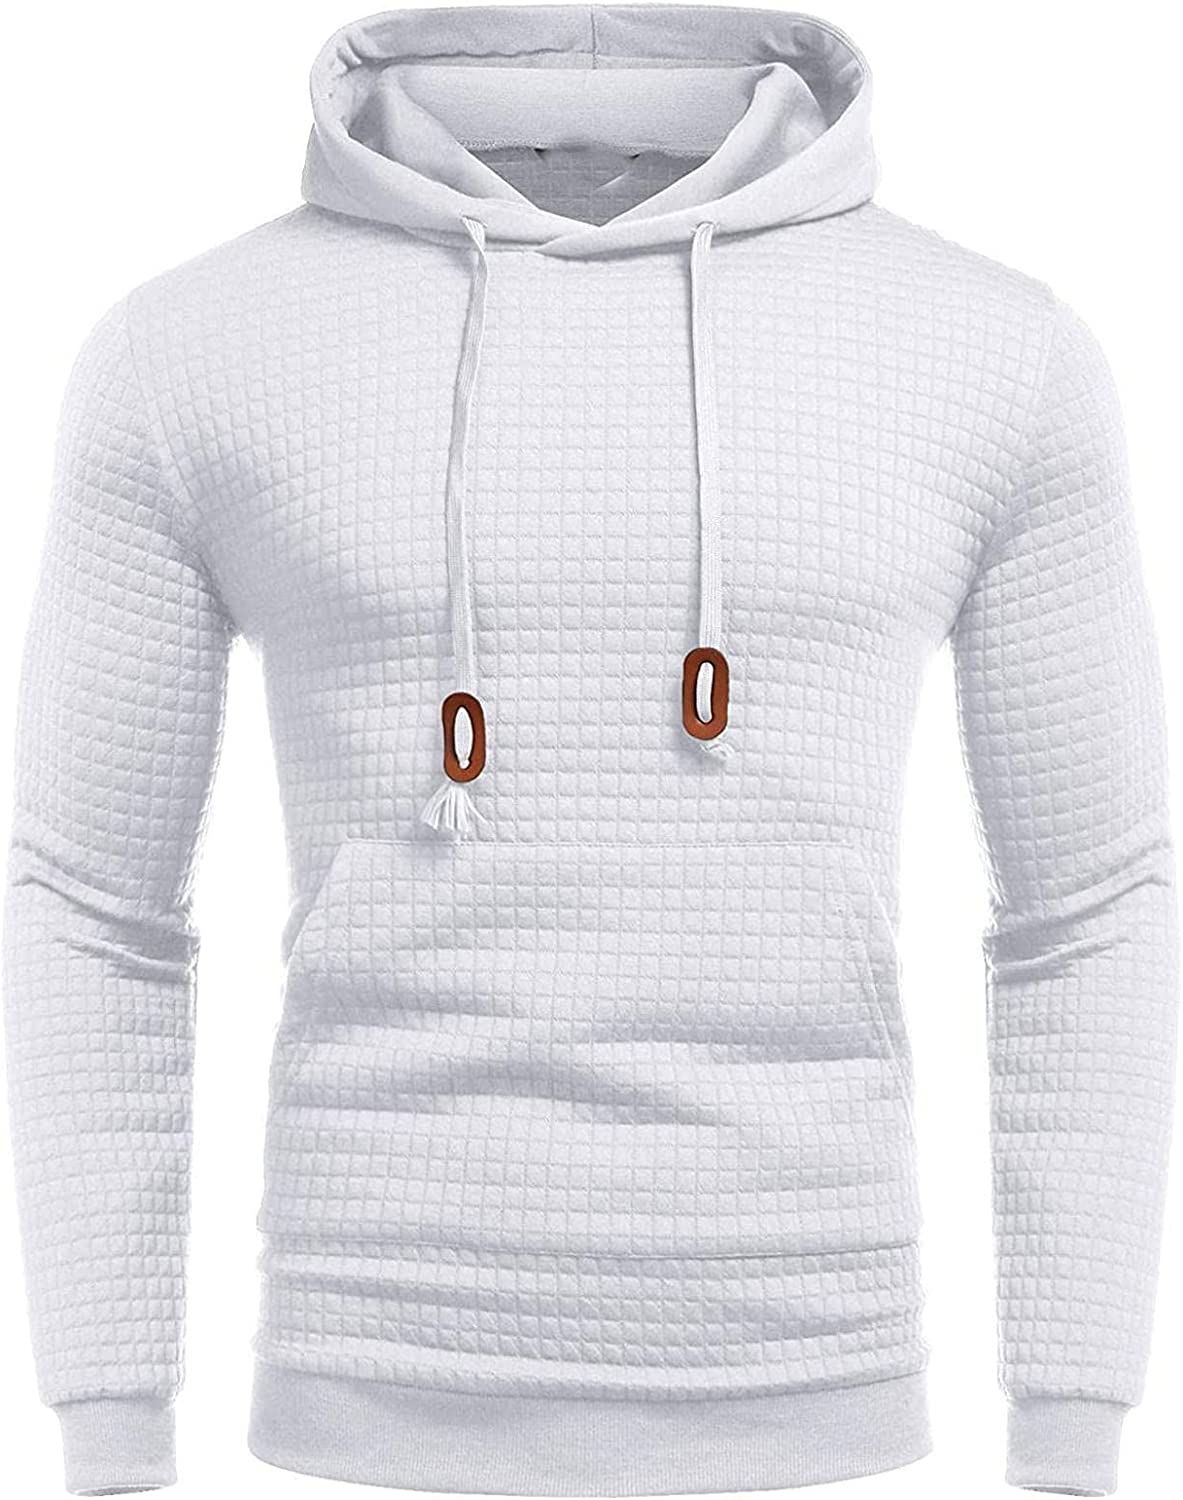 Qsctys Men's Solid Pullover Athletic Hoodies Sports Soft Cotton Blend Slim Hooded Sweatshirts with Kanga Pocket Black White